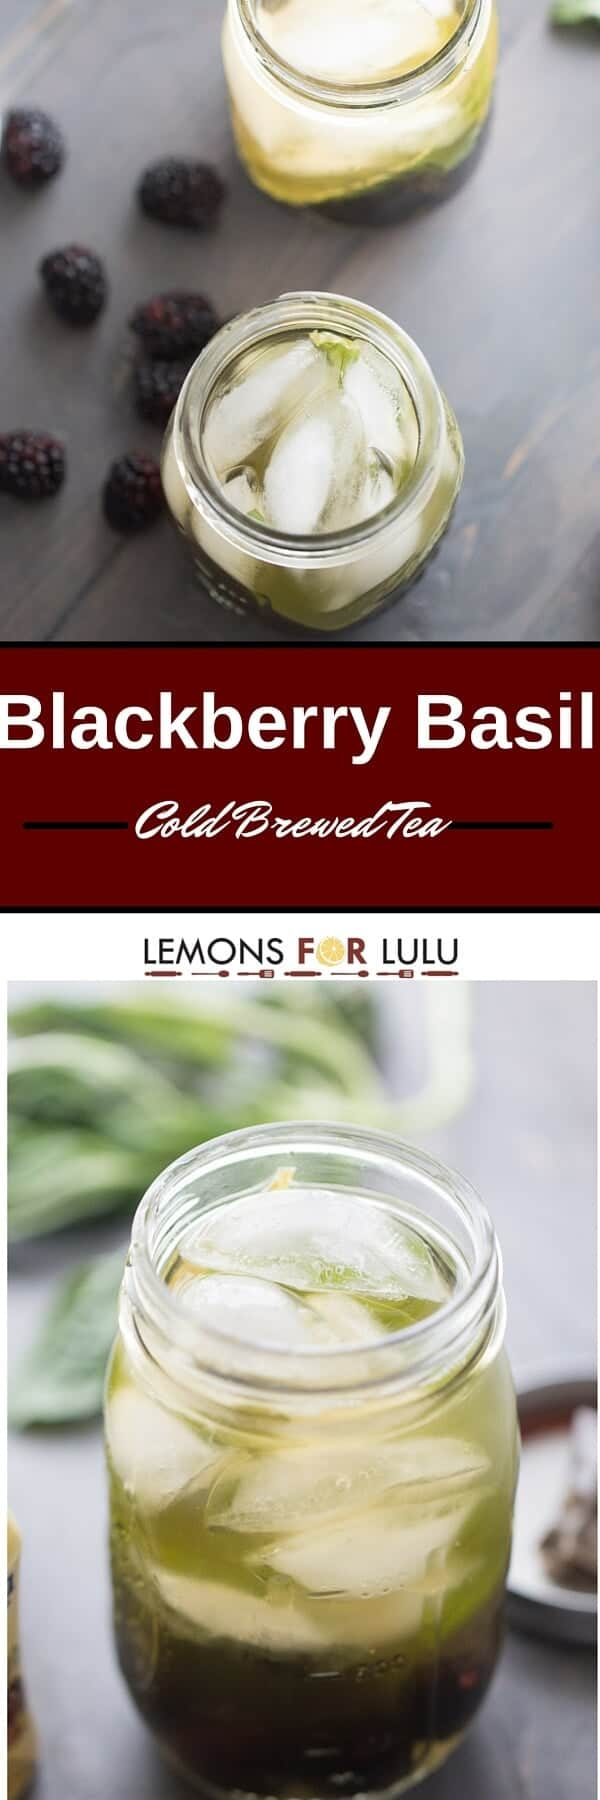 photo collage - Cold brewed Blackberry Basil Iced Tea Recipe with ice in a mason jar.